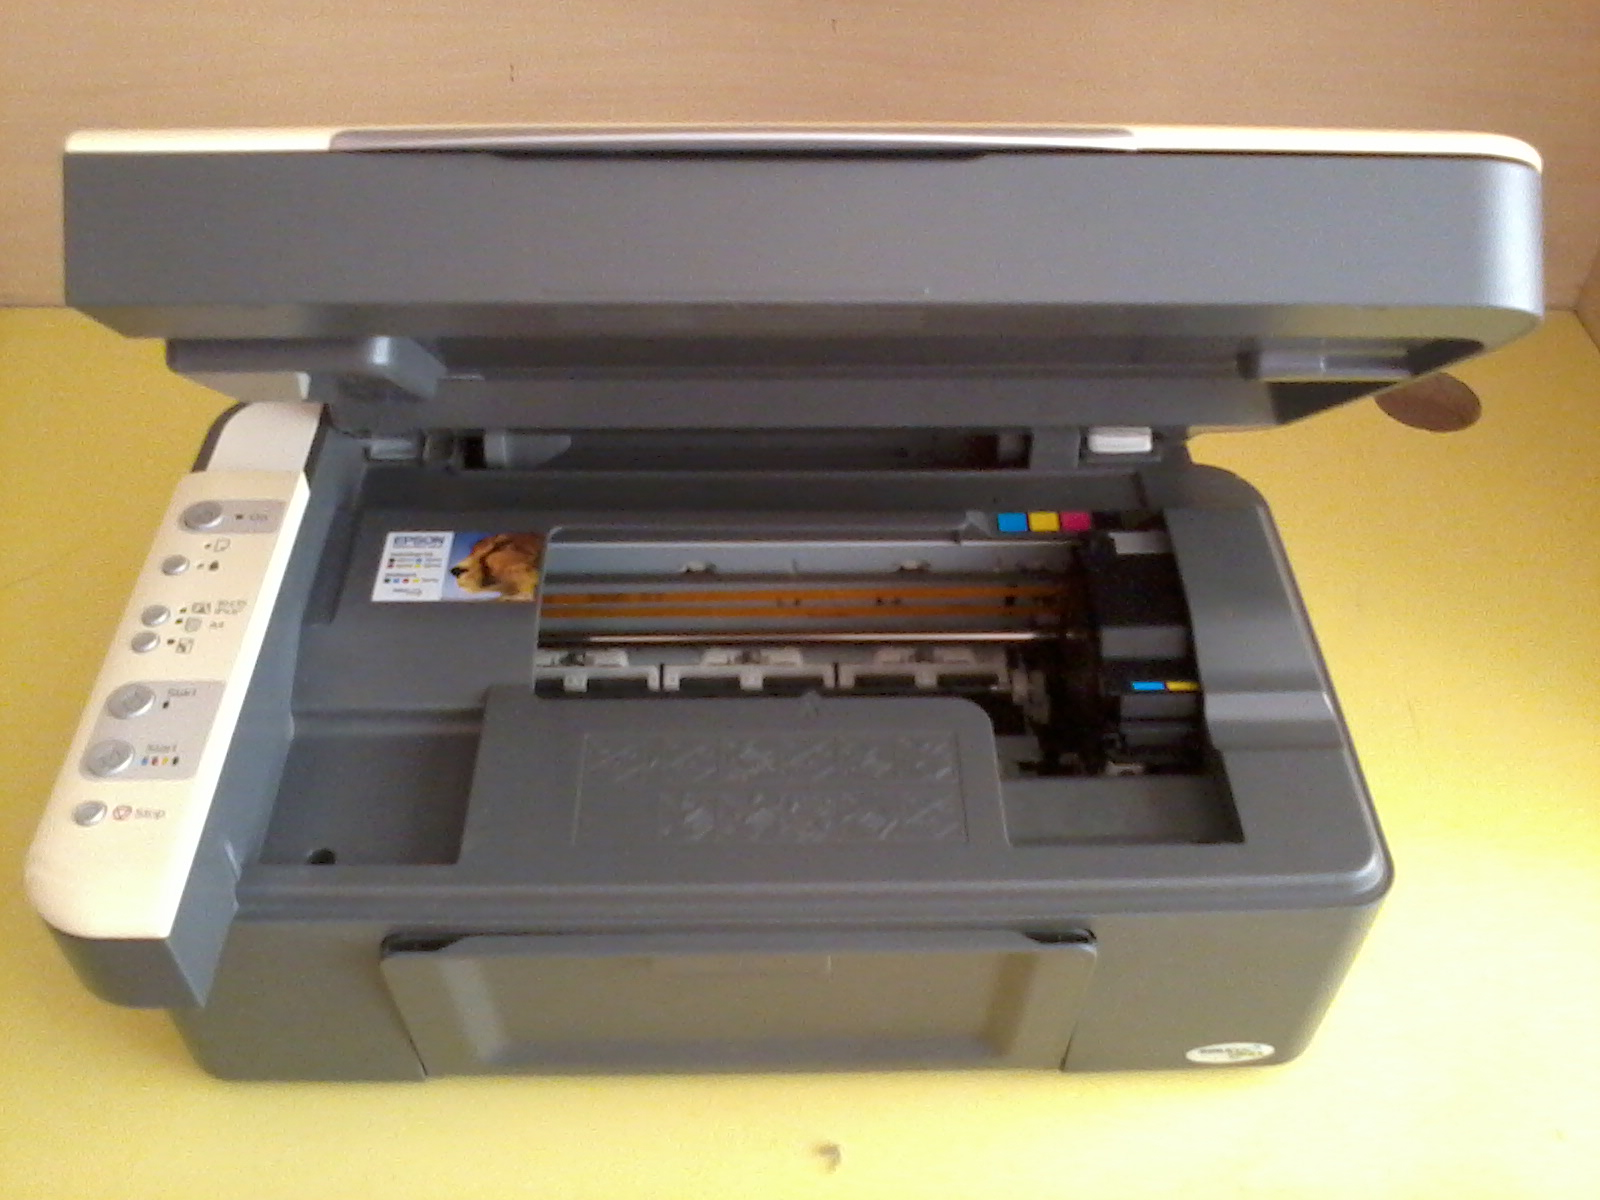 epson stylus dx4050 scan driver download